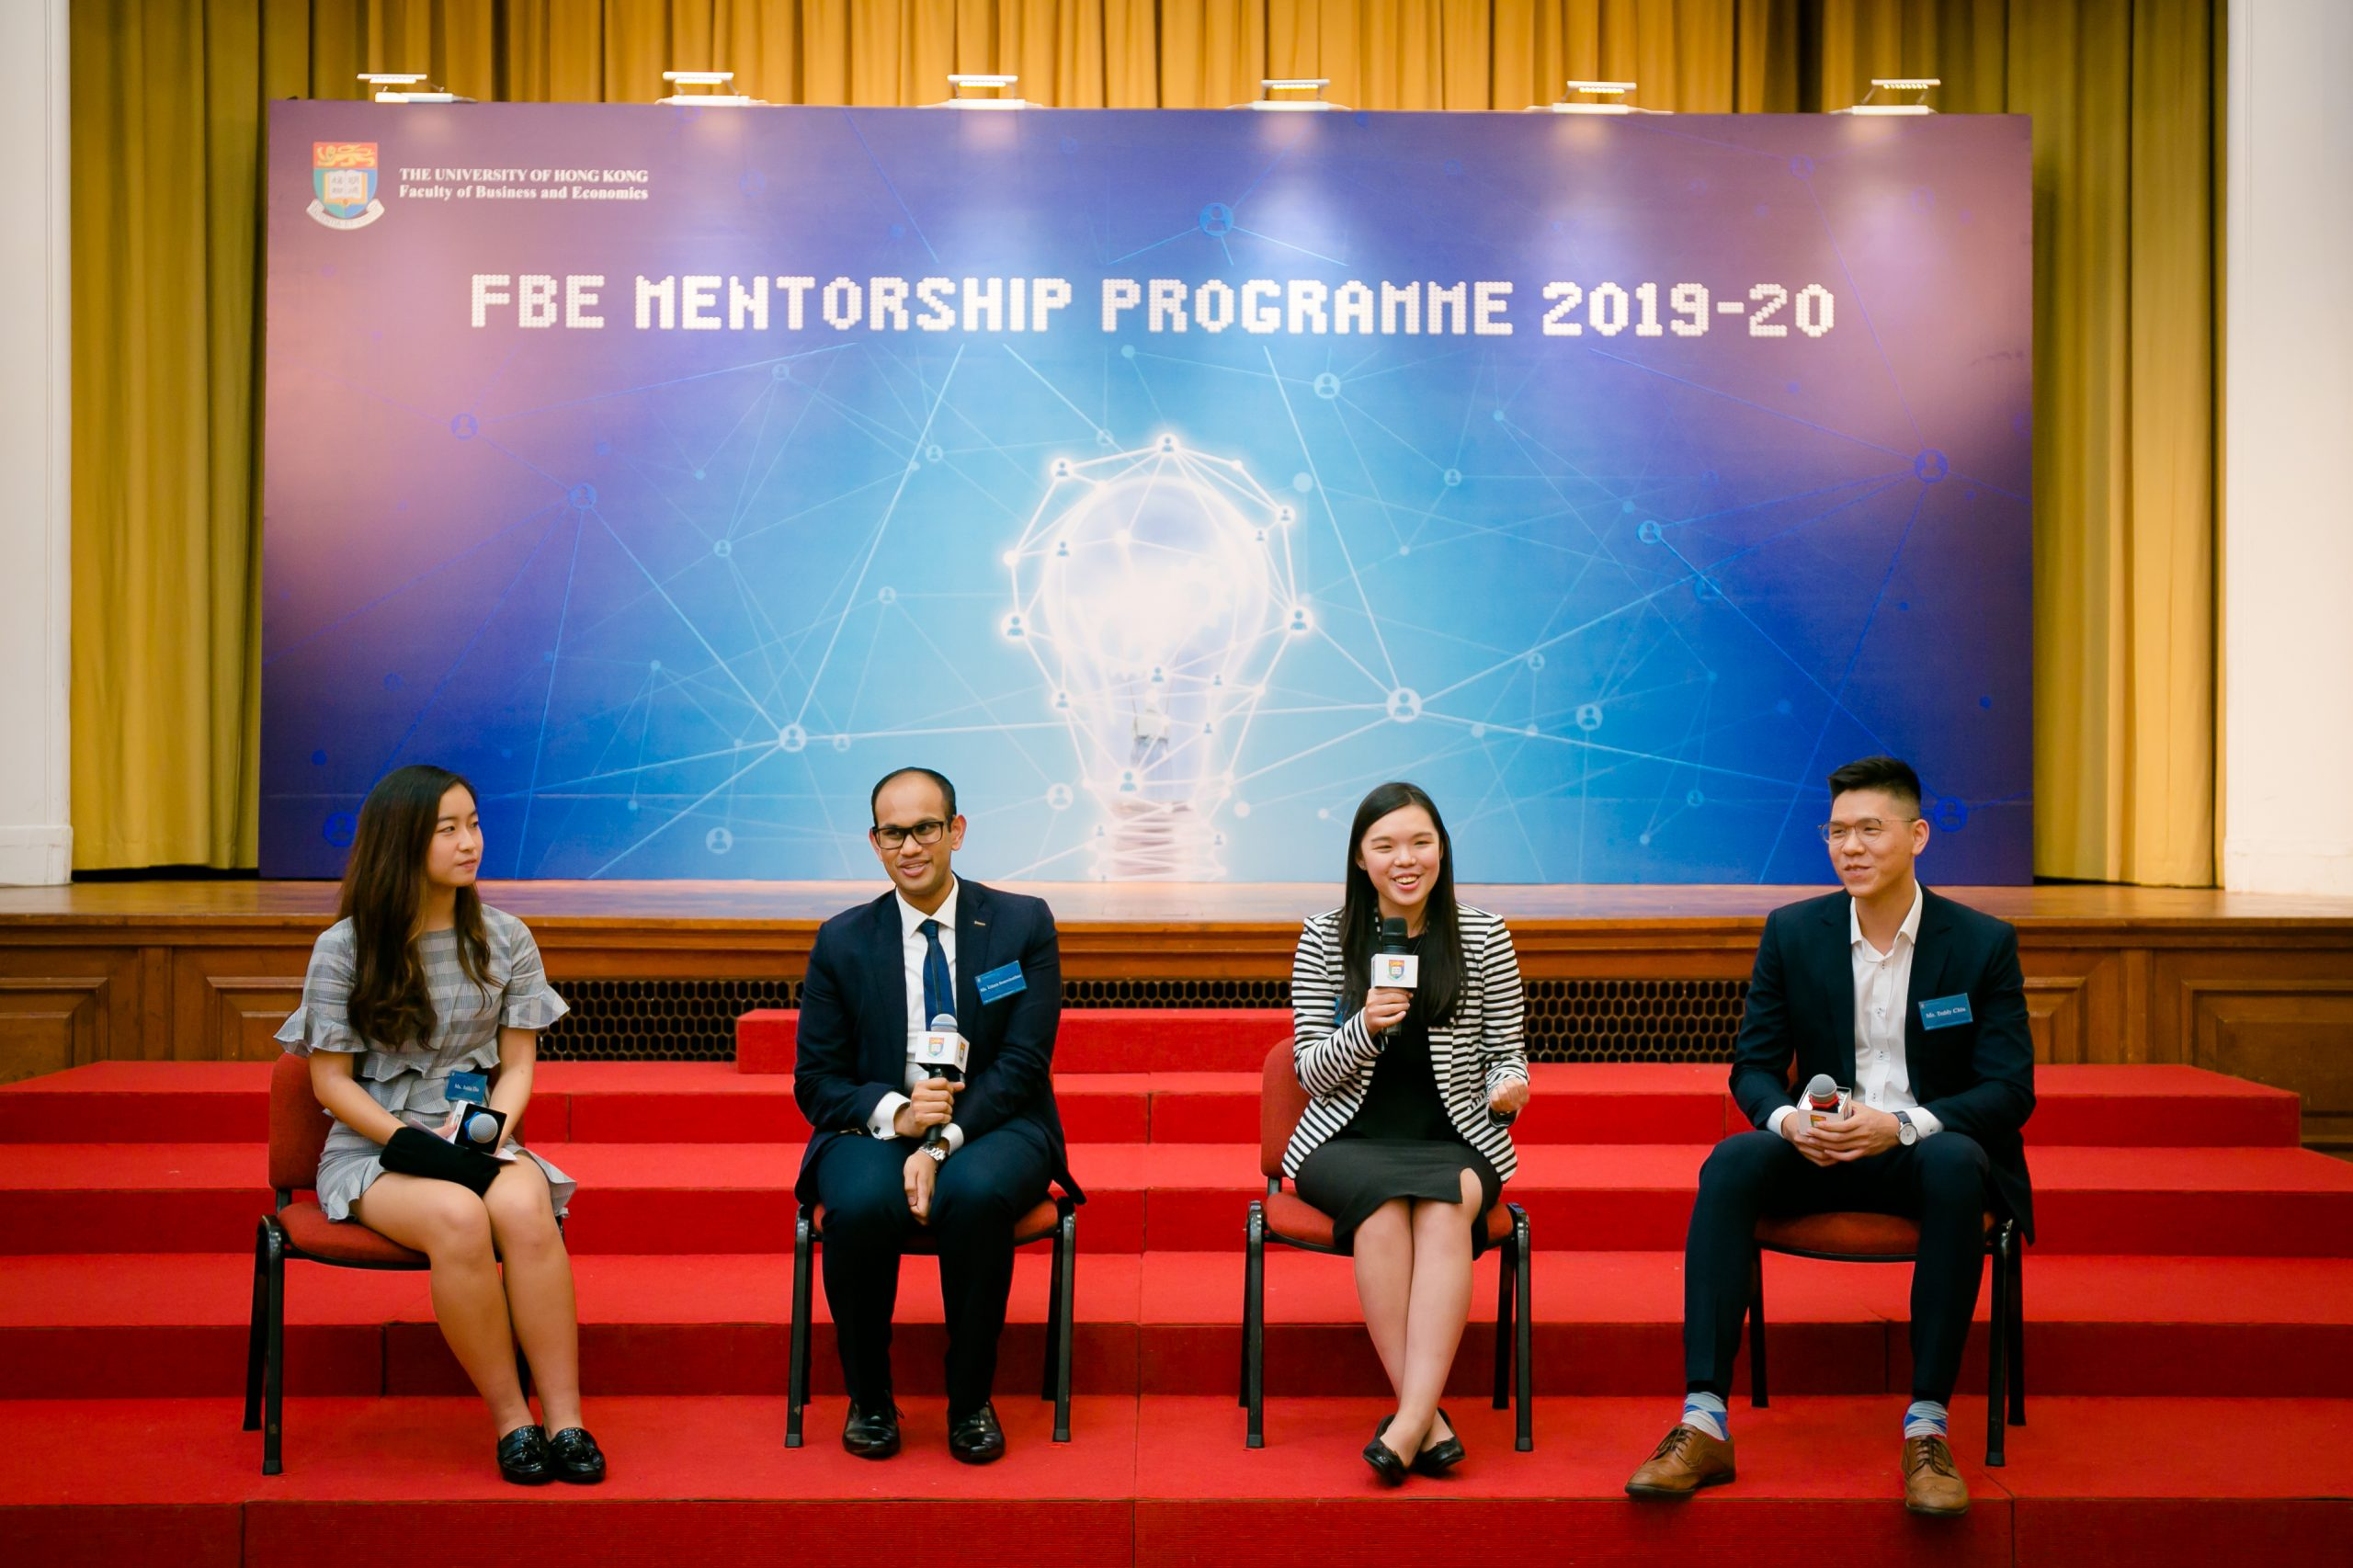 FBE Mentorship Programme 2019-20 empowers students